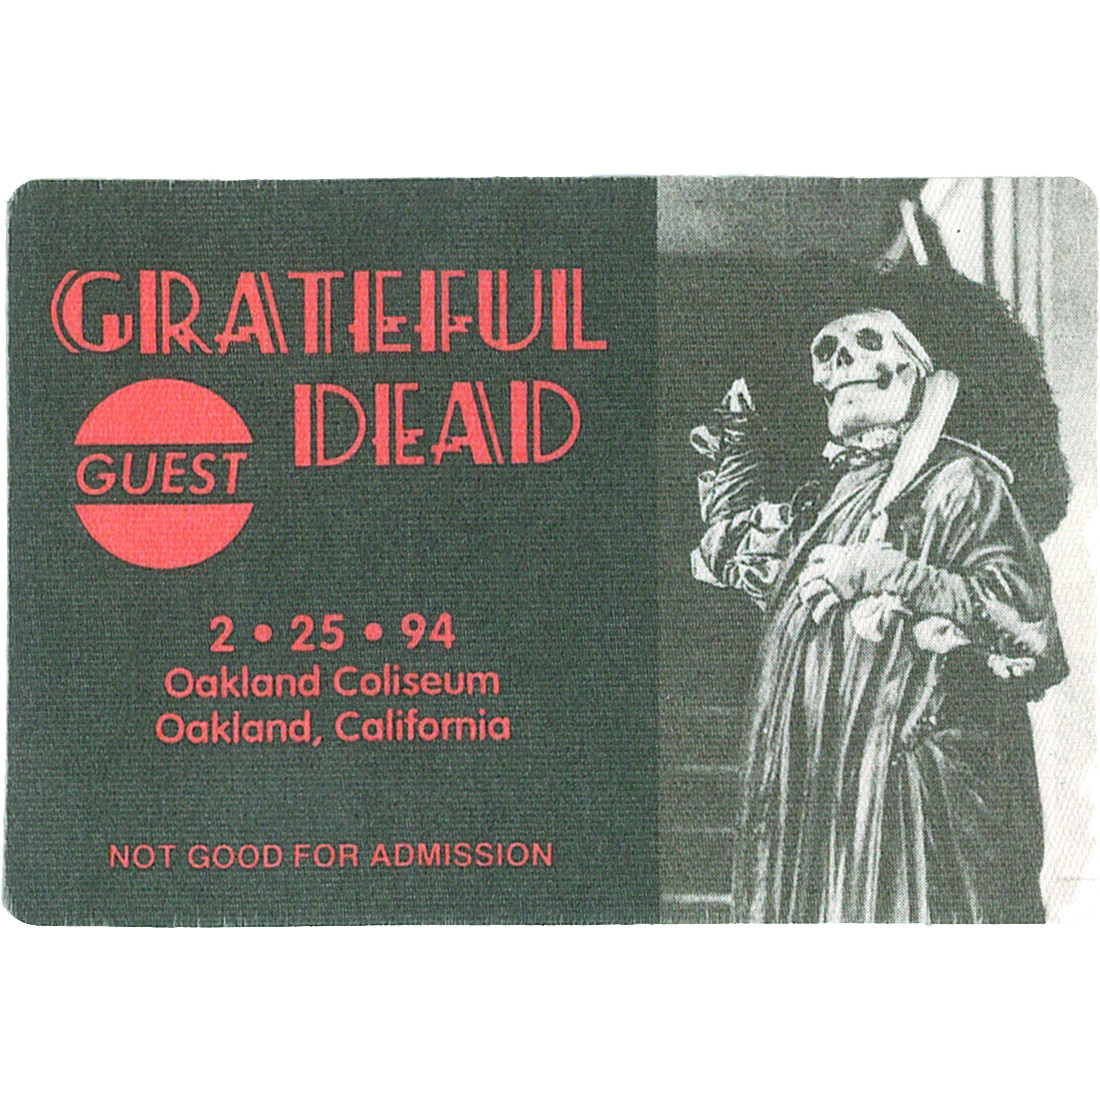 Grateful Dead 1994 02-25 Backstage Pass